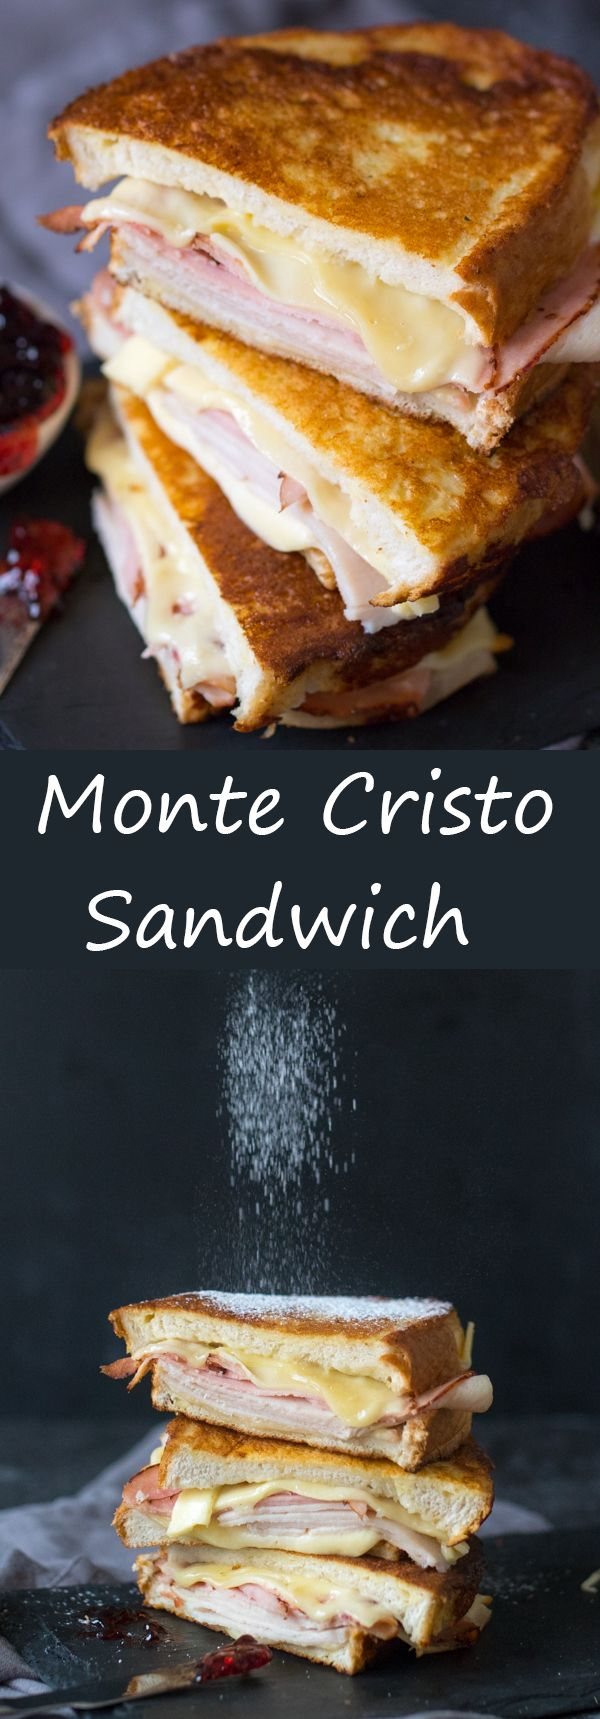 Monte Cristo Sandwich! Turkey, ham and melty cheese, SANDWICHED together between golden slices of french toast.